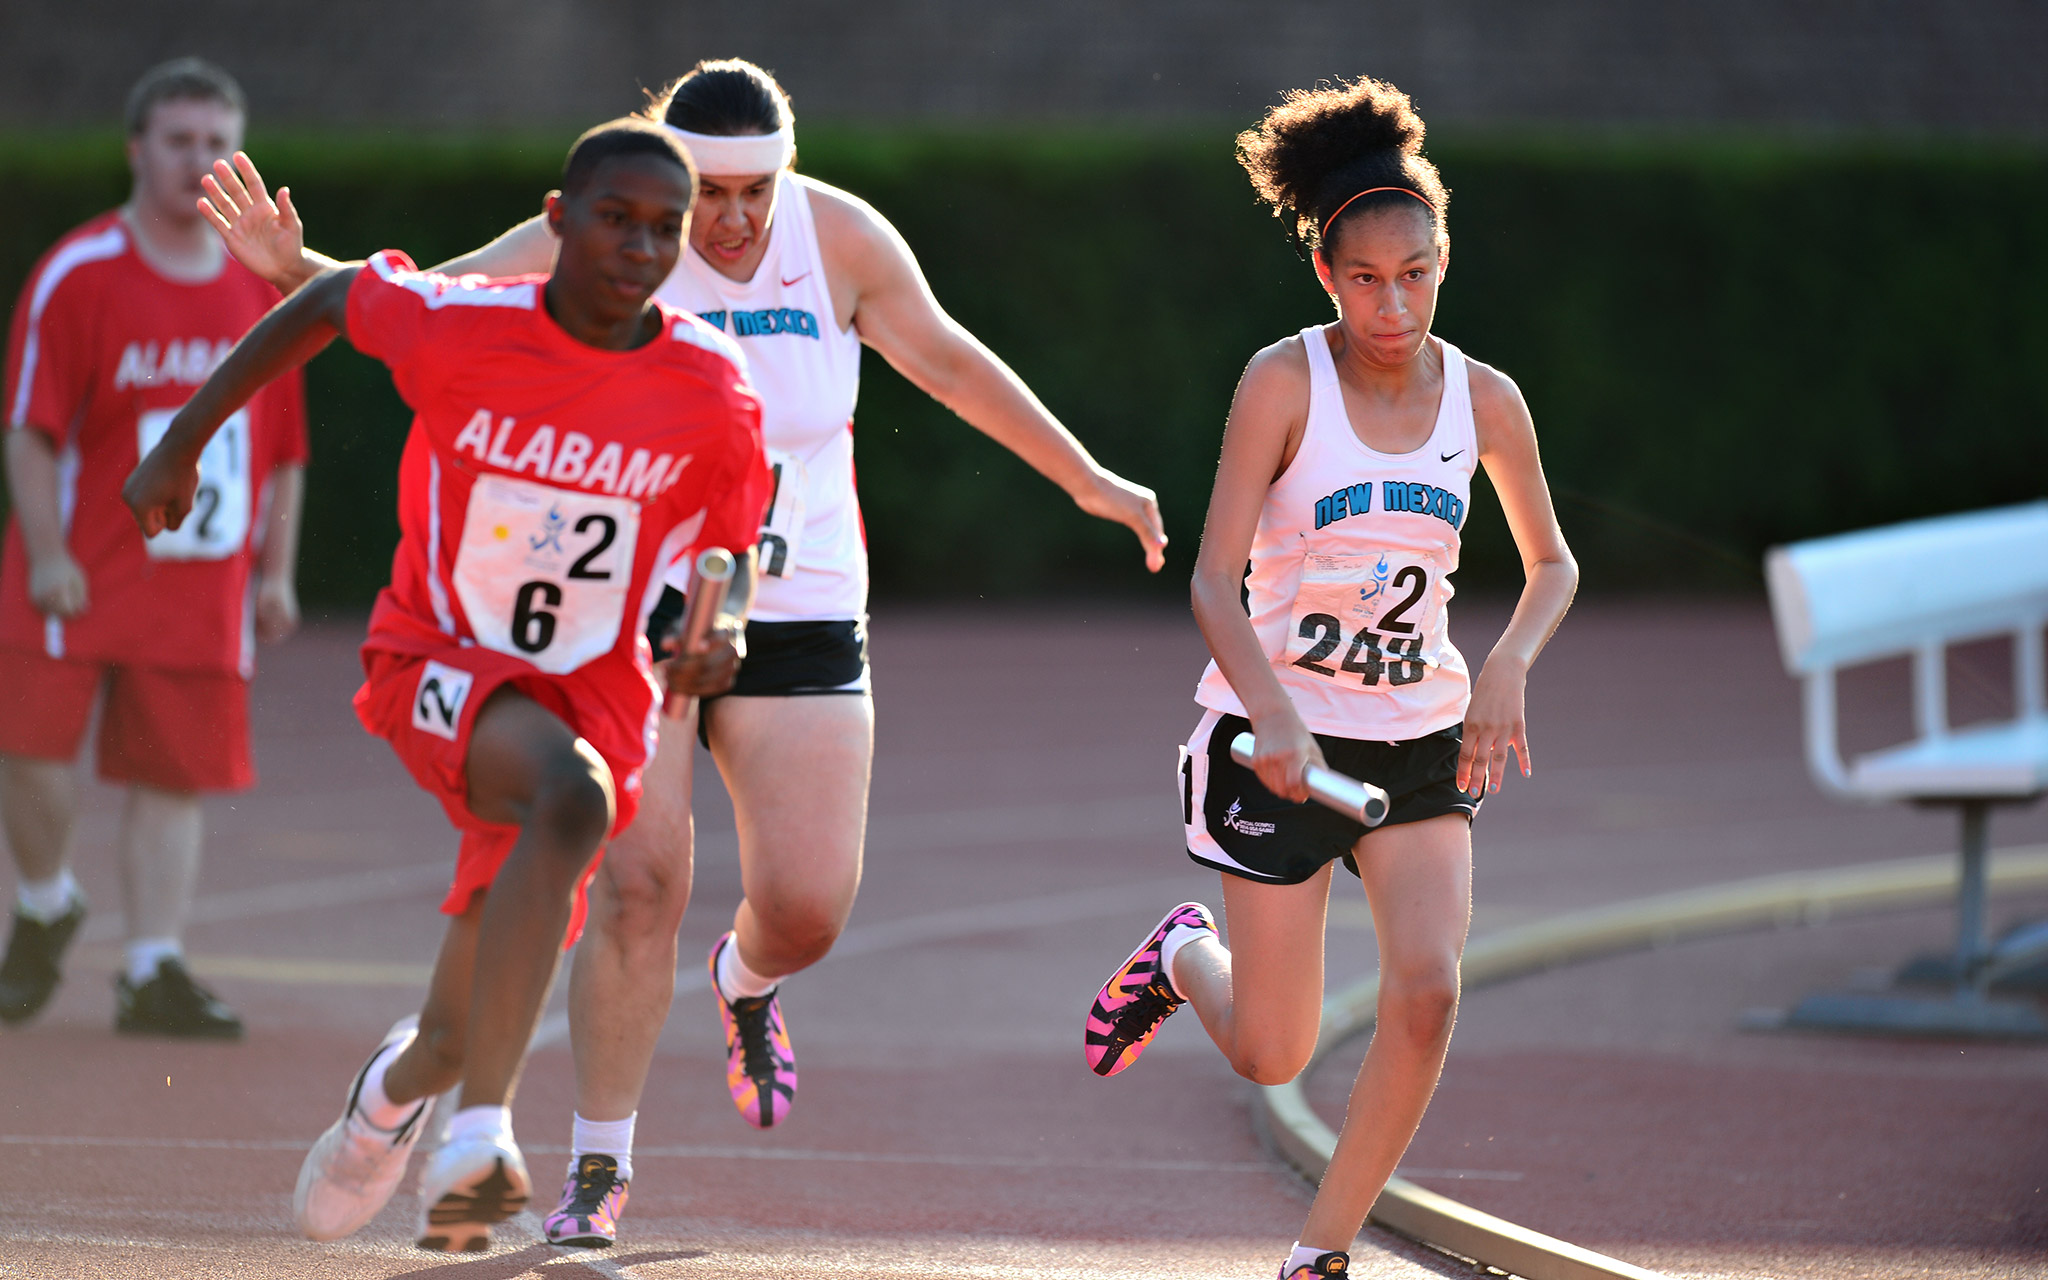 Devontay Henderson of Alabama and Ayanna Reid of New Mexico battle neck and neck in the 4x100M relay. Team Alabama won the gold.